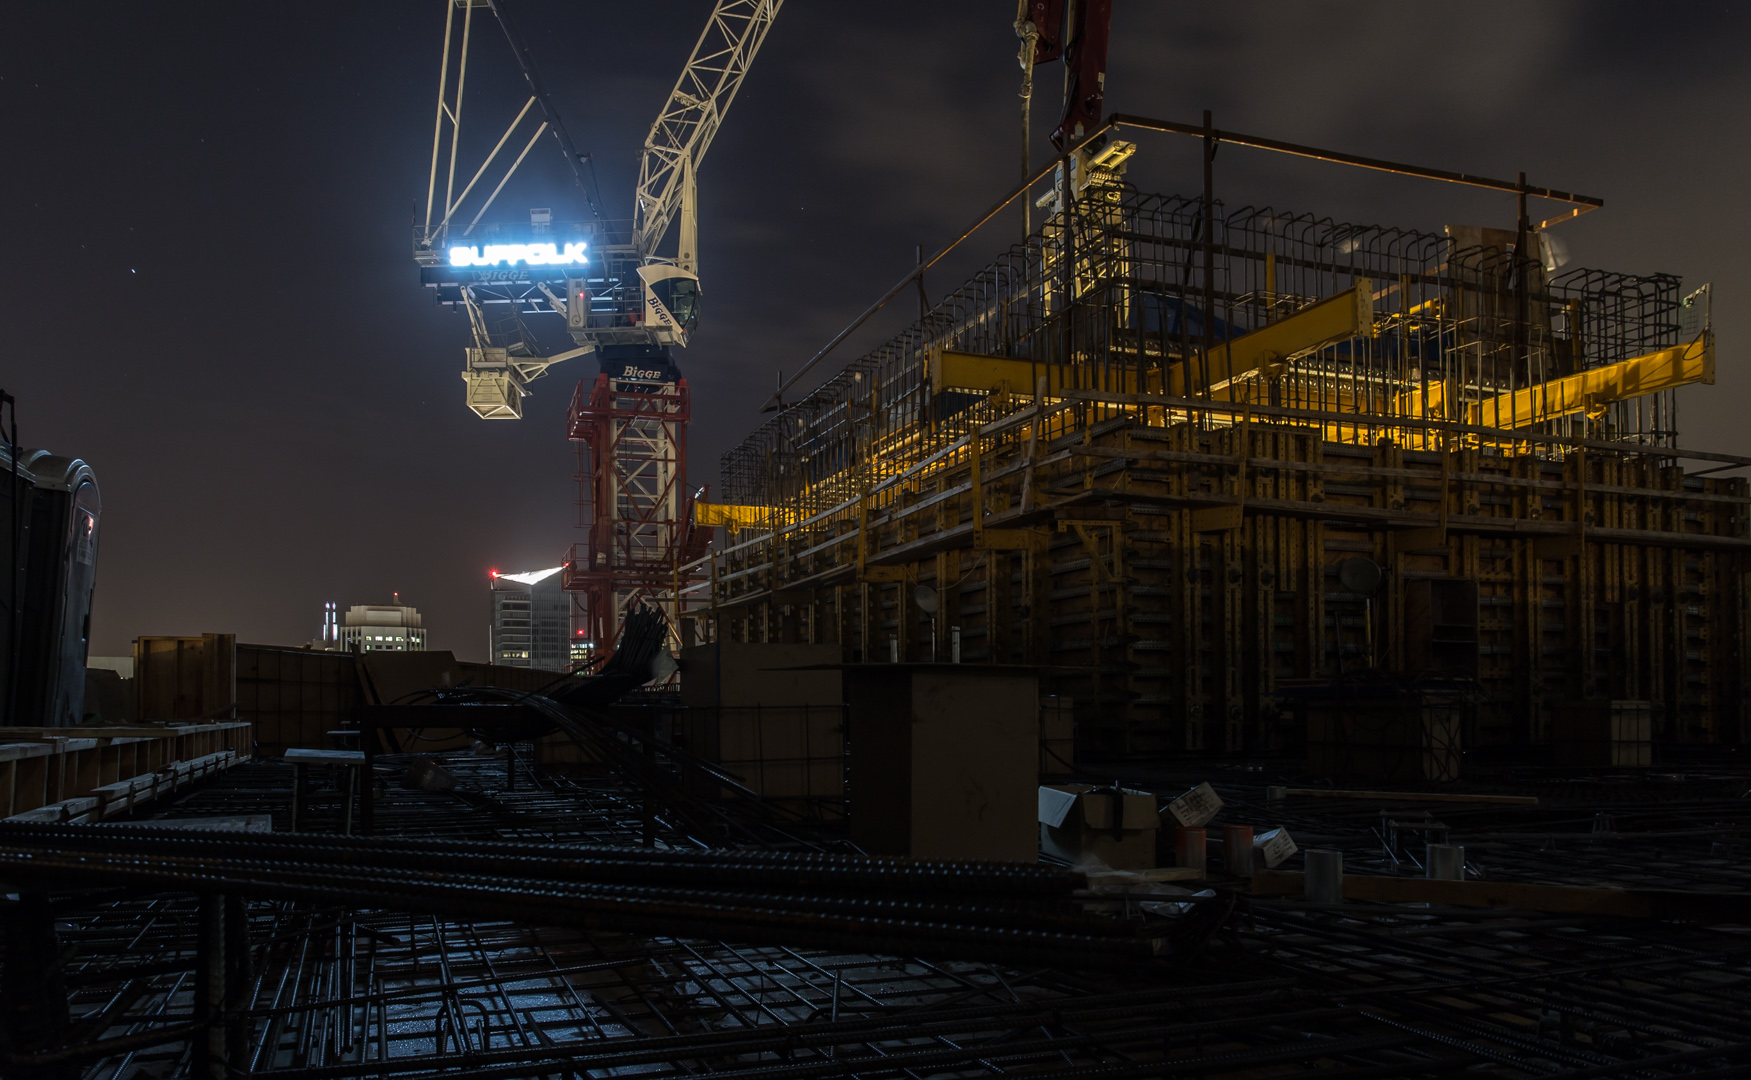 San Francisco construction site roof at night